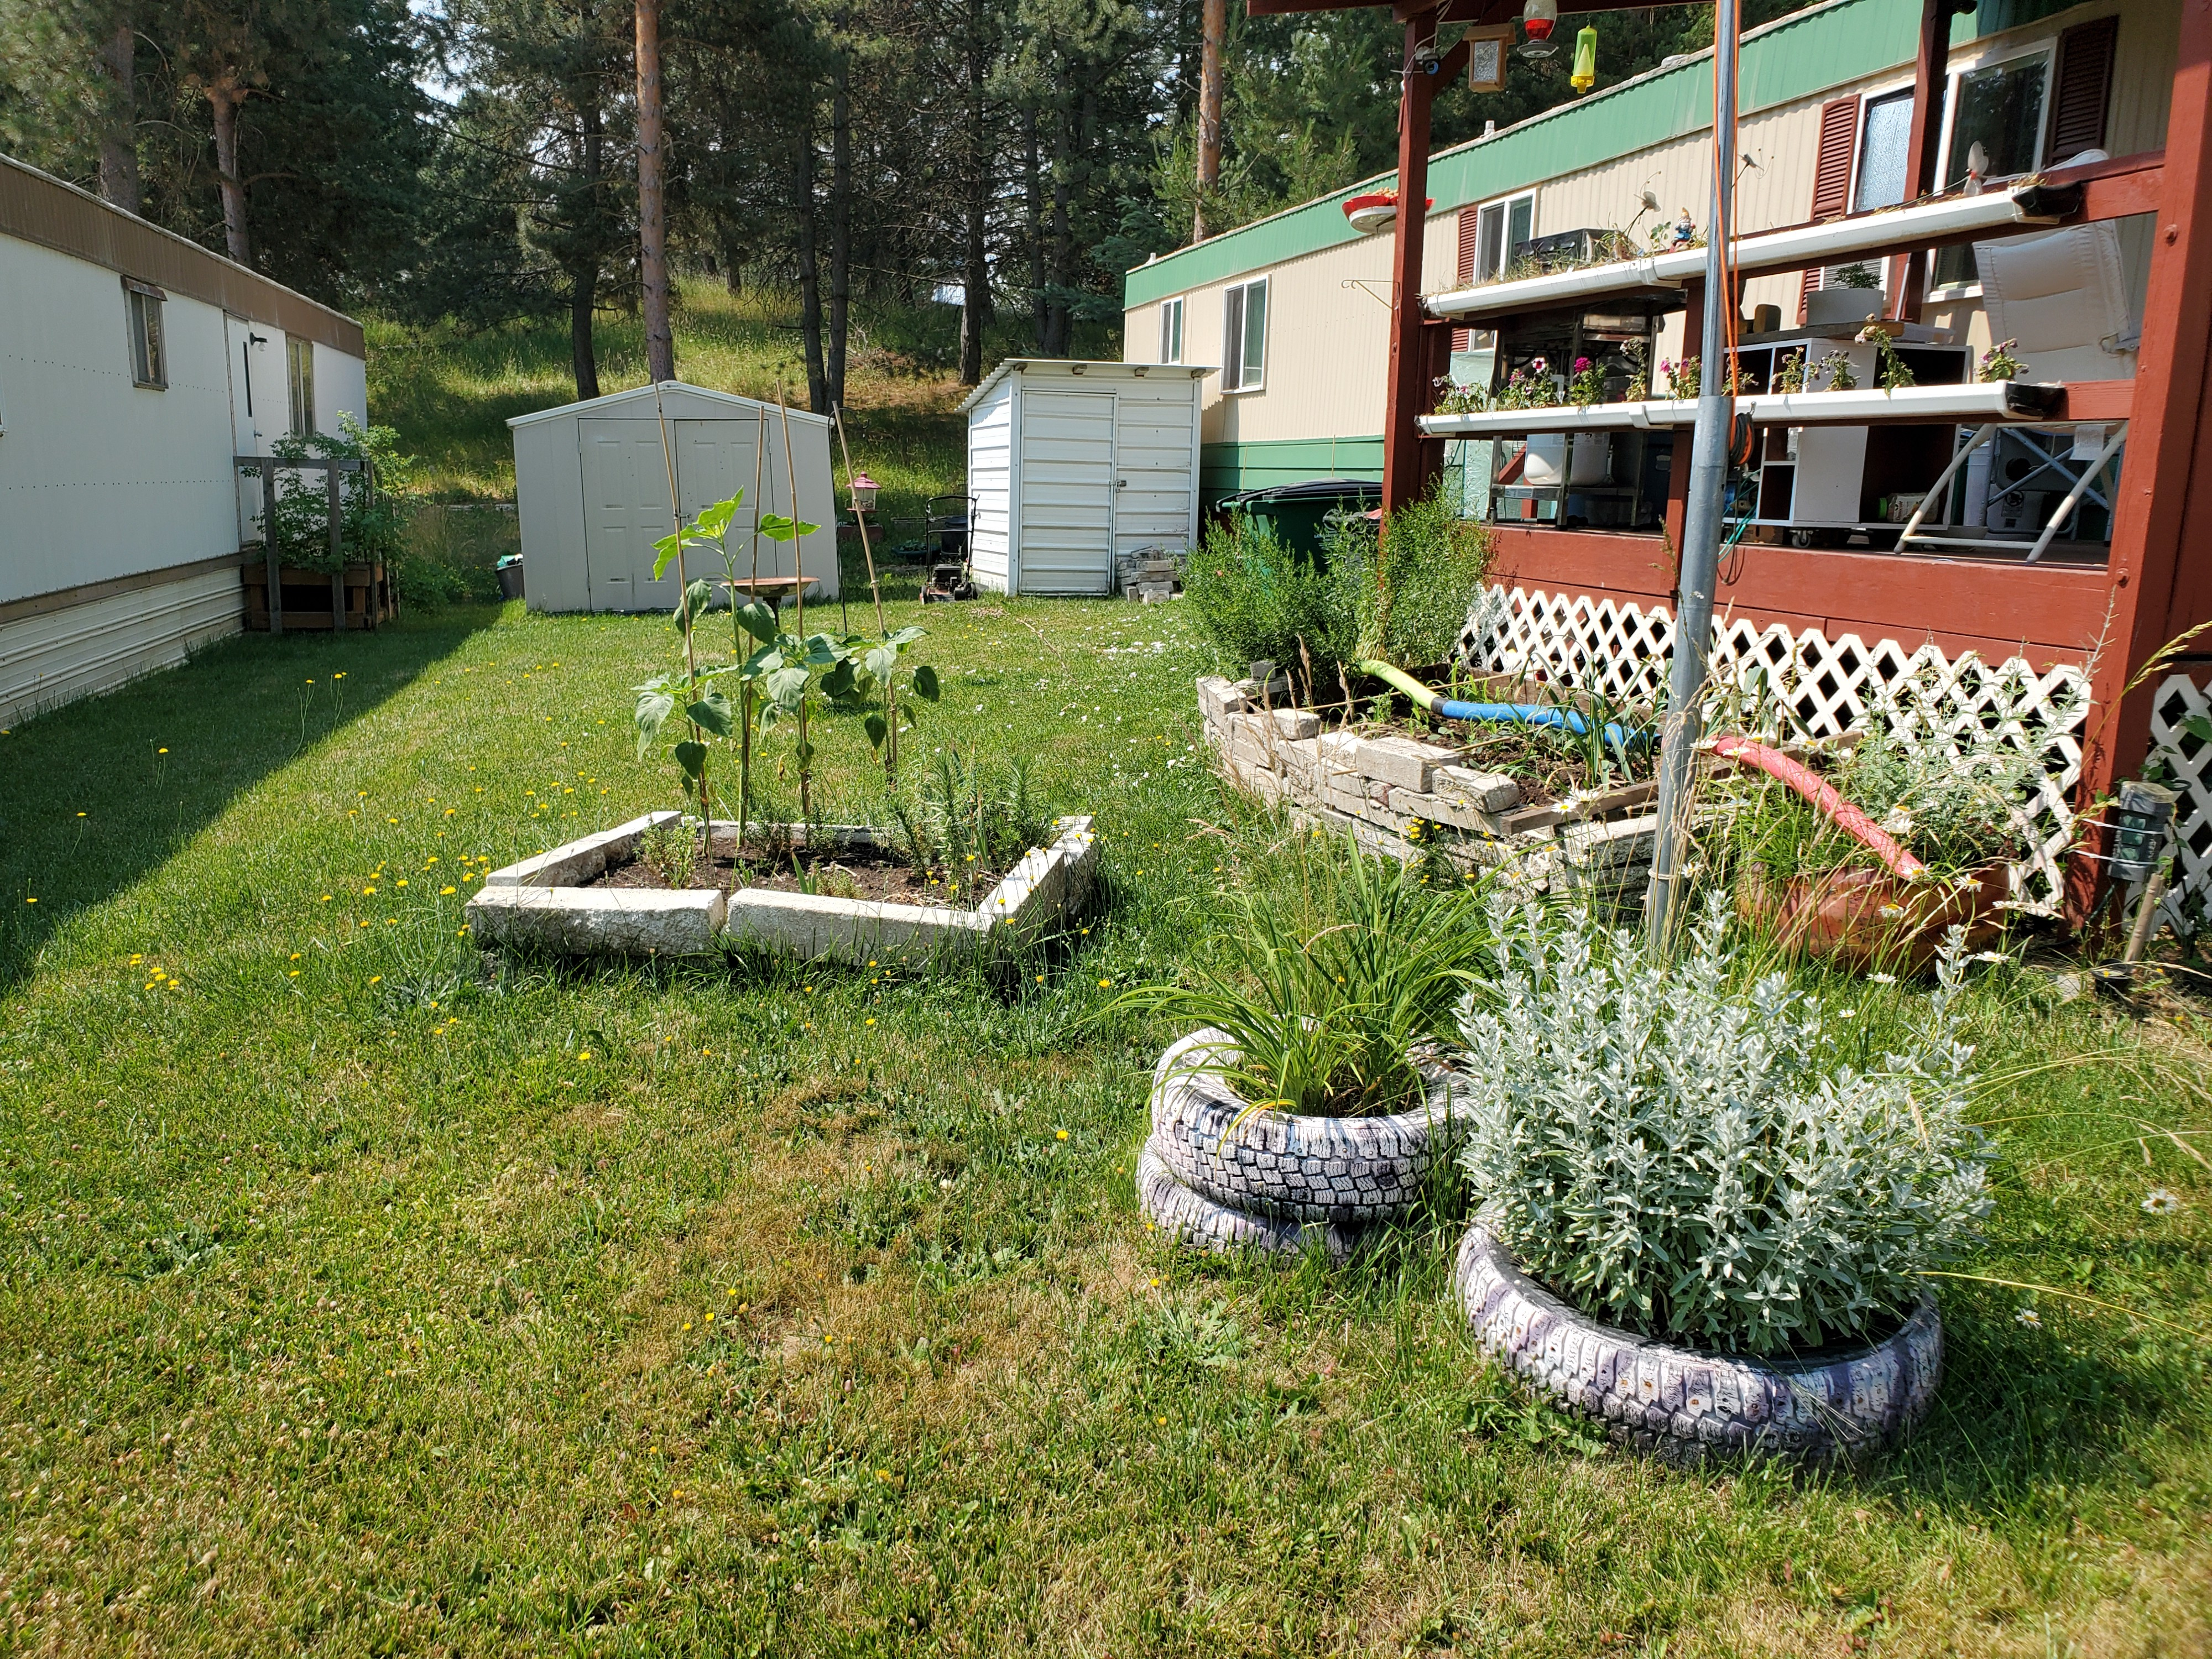 Yard in a mobile home park between two mobile homes with tire planters, raised beds made from concrete bricks and yellow wildflowers growing in the lawn.